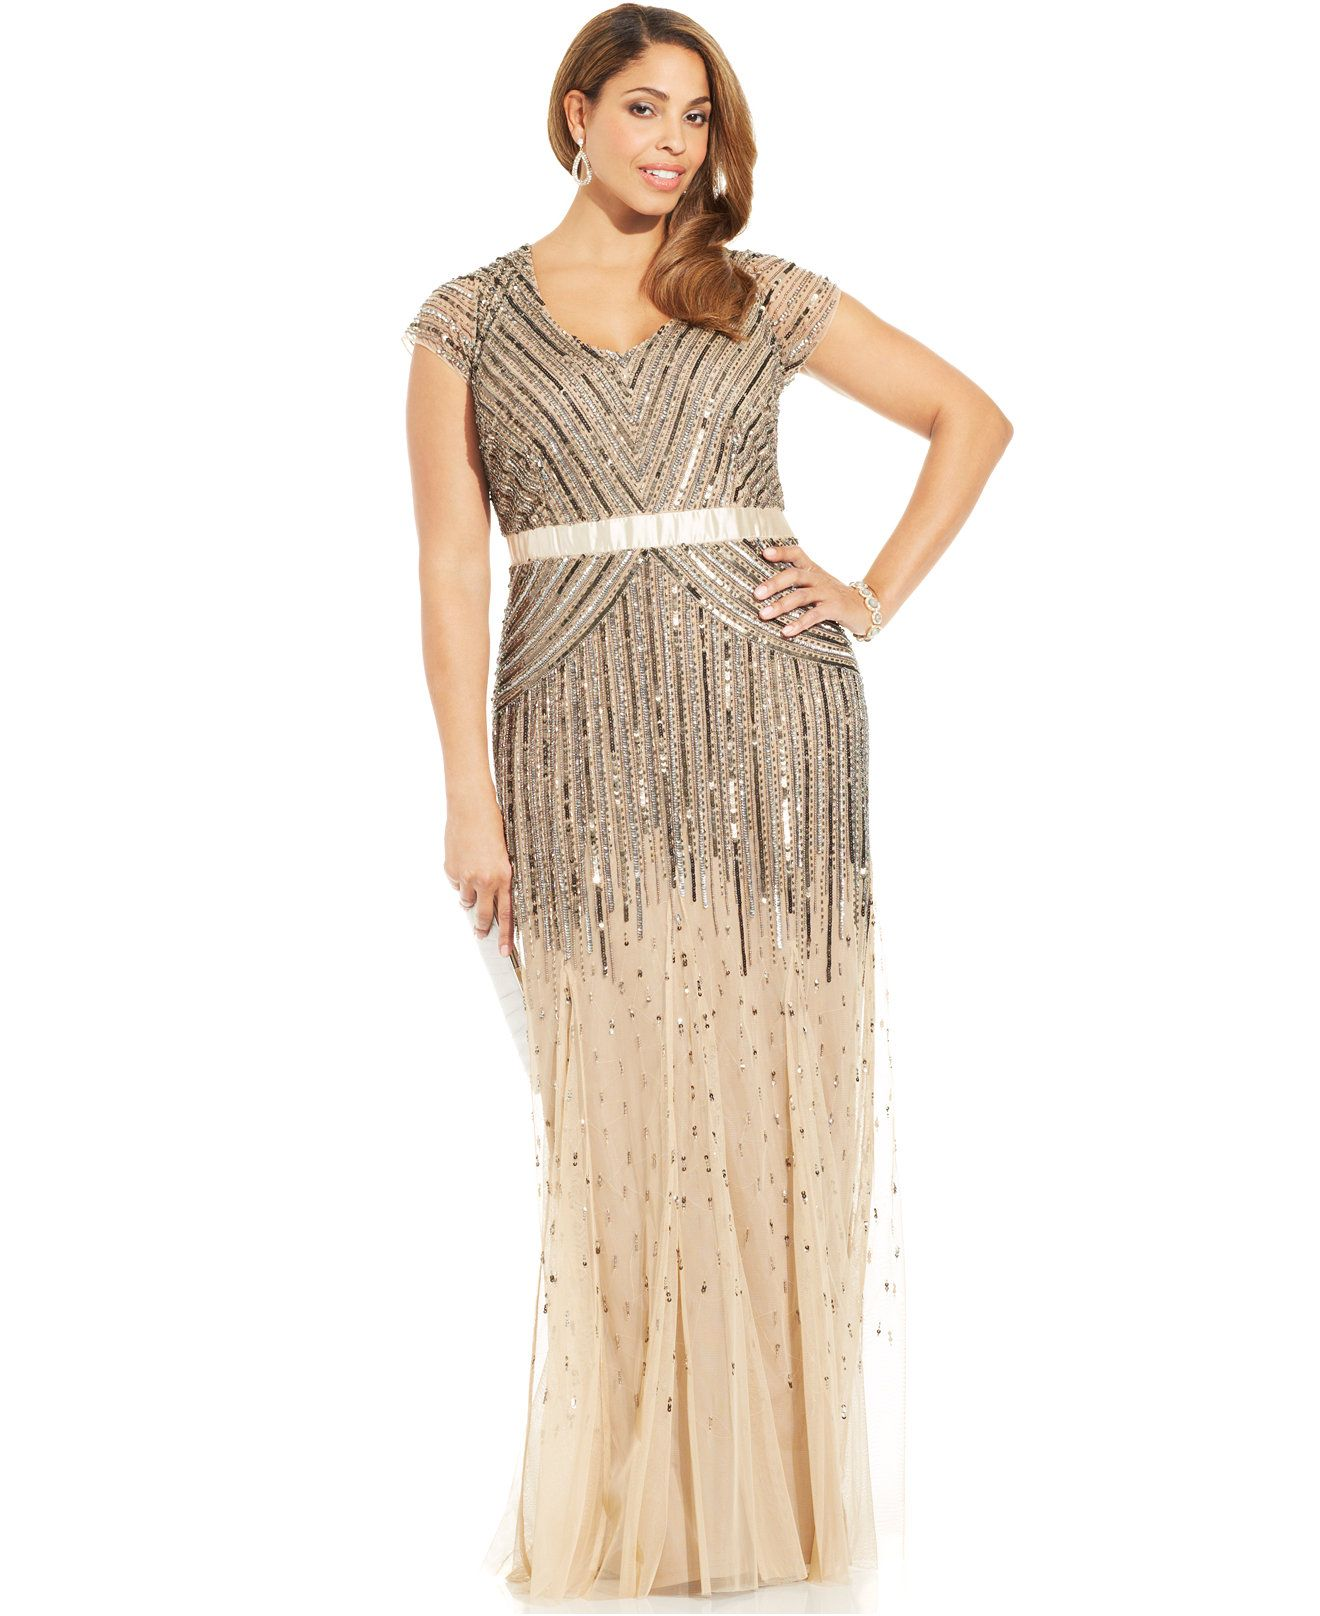 Adrianna Papell Plus Size Cap-Sleeve Beaded Sequined Gown - Dresses ...